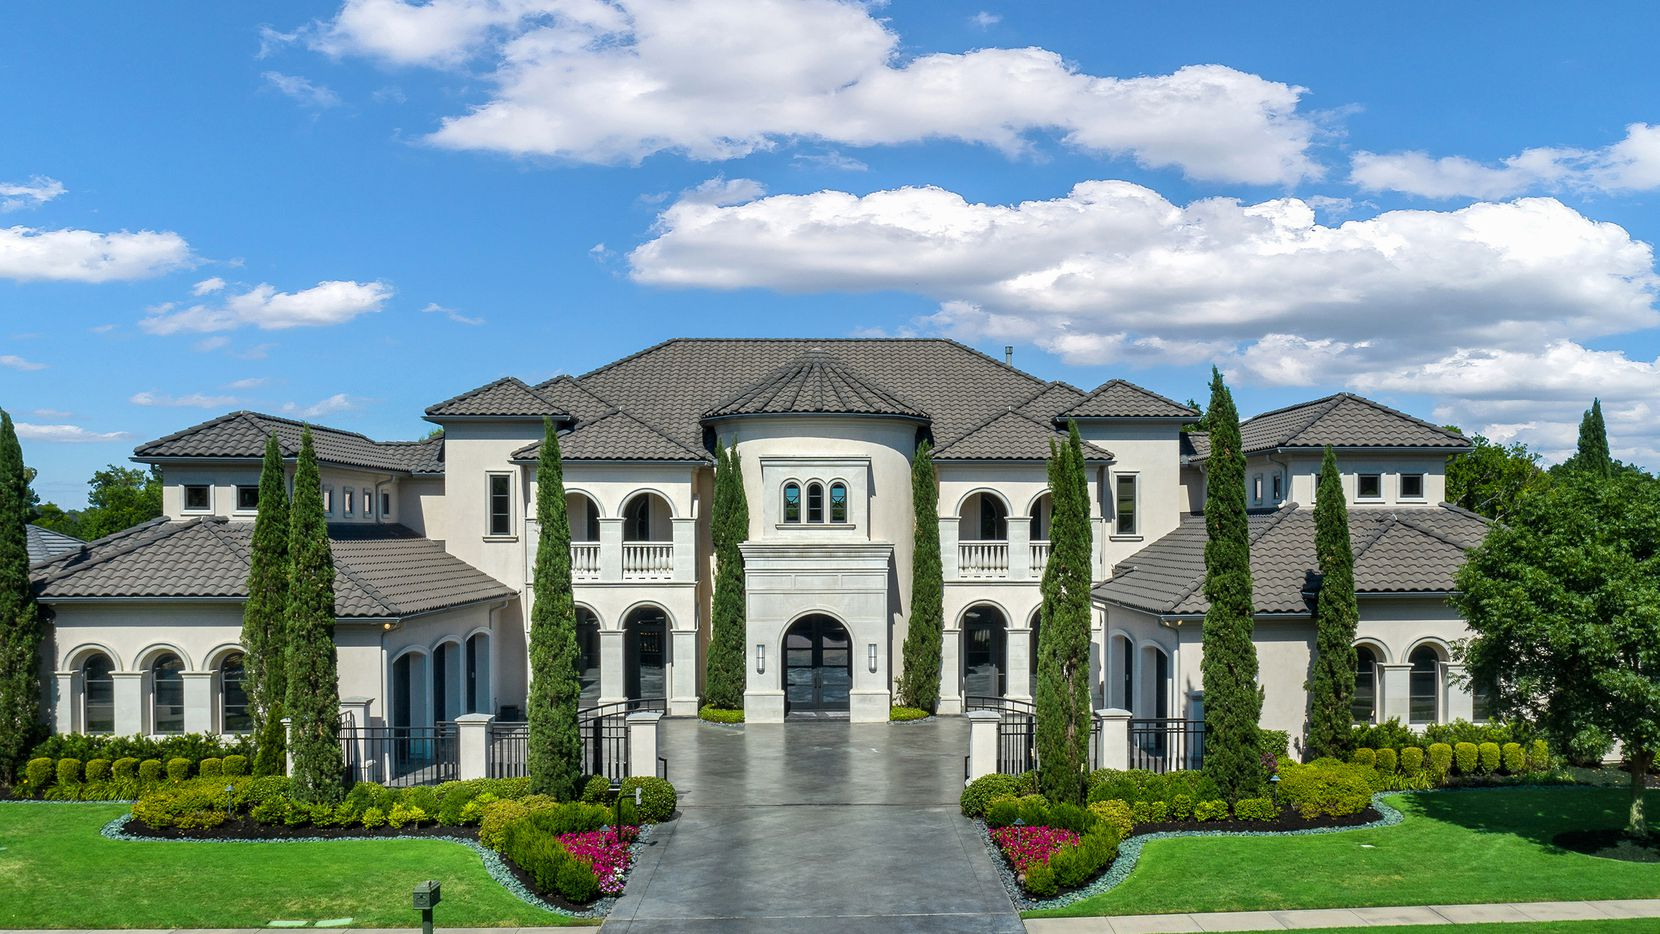 The 0.71-acre estate at 414 Lakeway Drive in Allen is offered at $2,745,000.